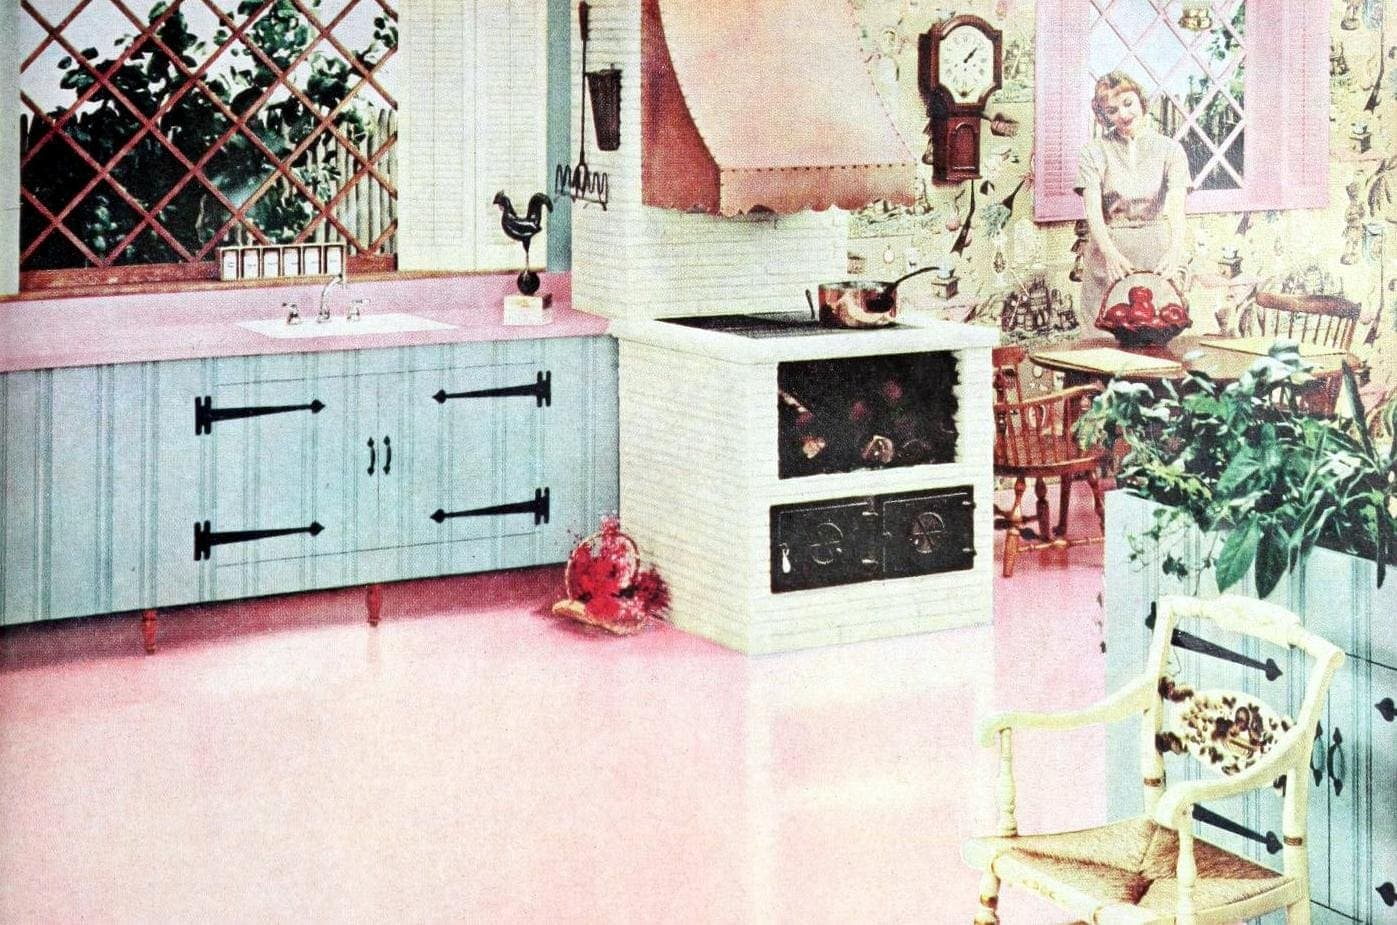 Kitchen with pink floors and countertops - 1950s